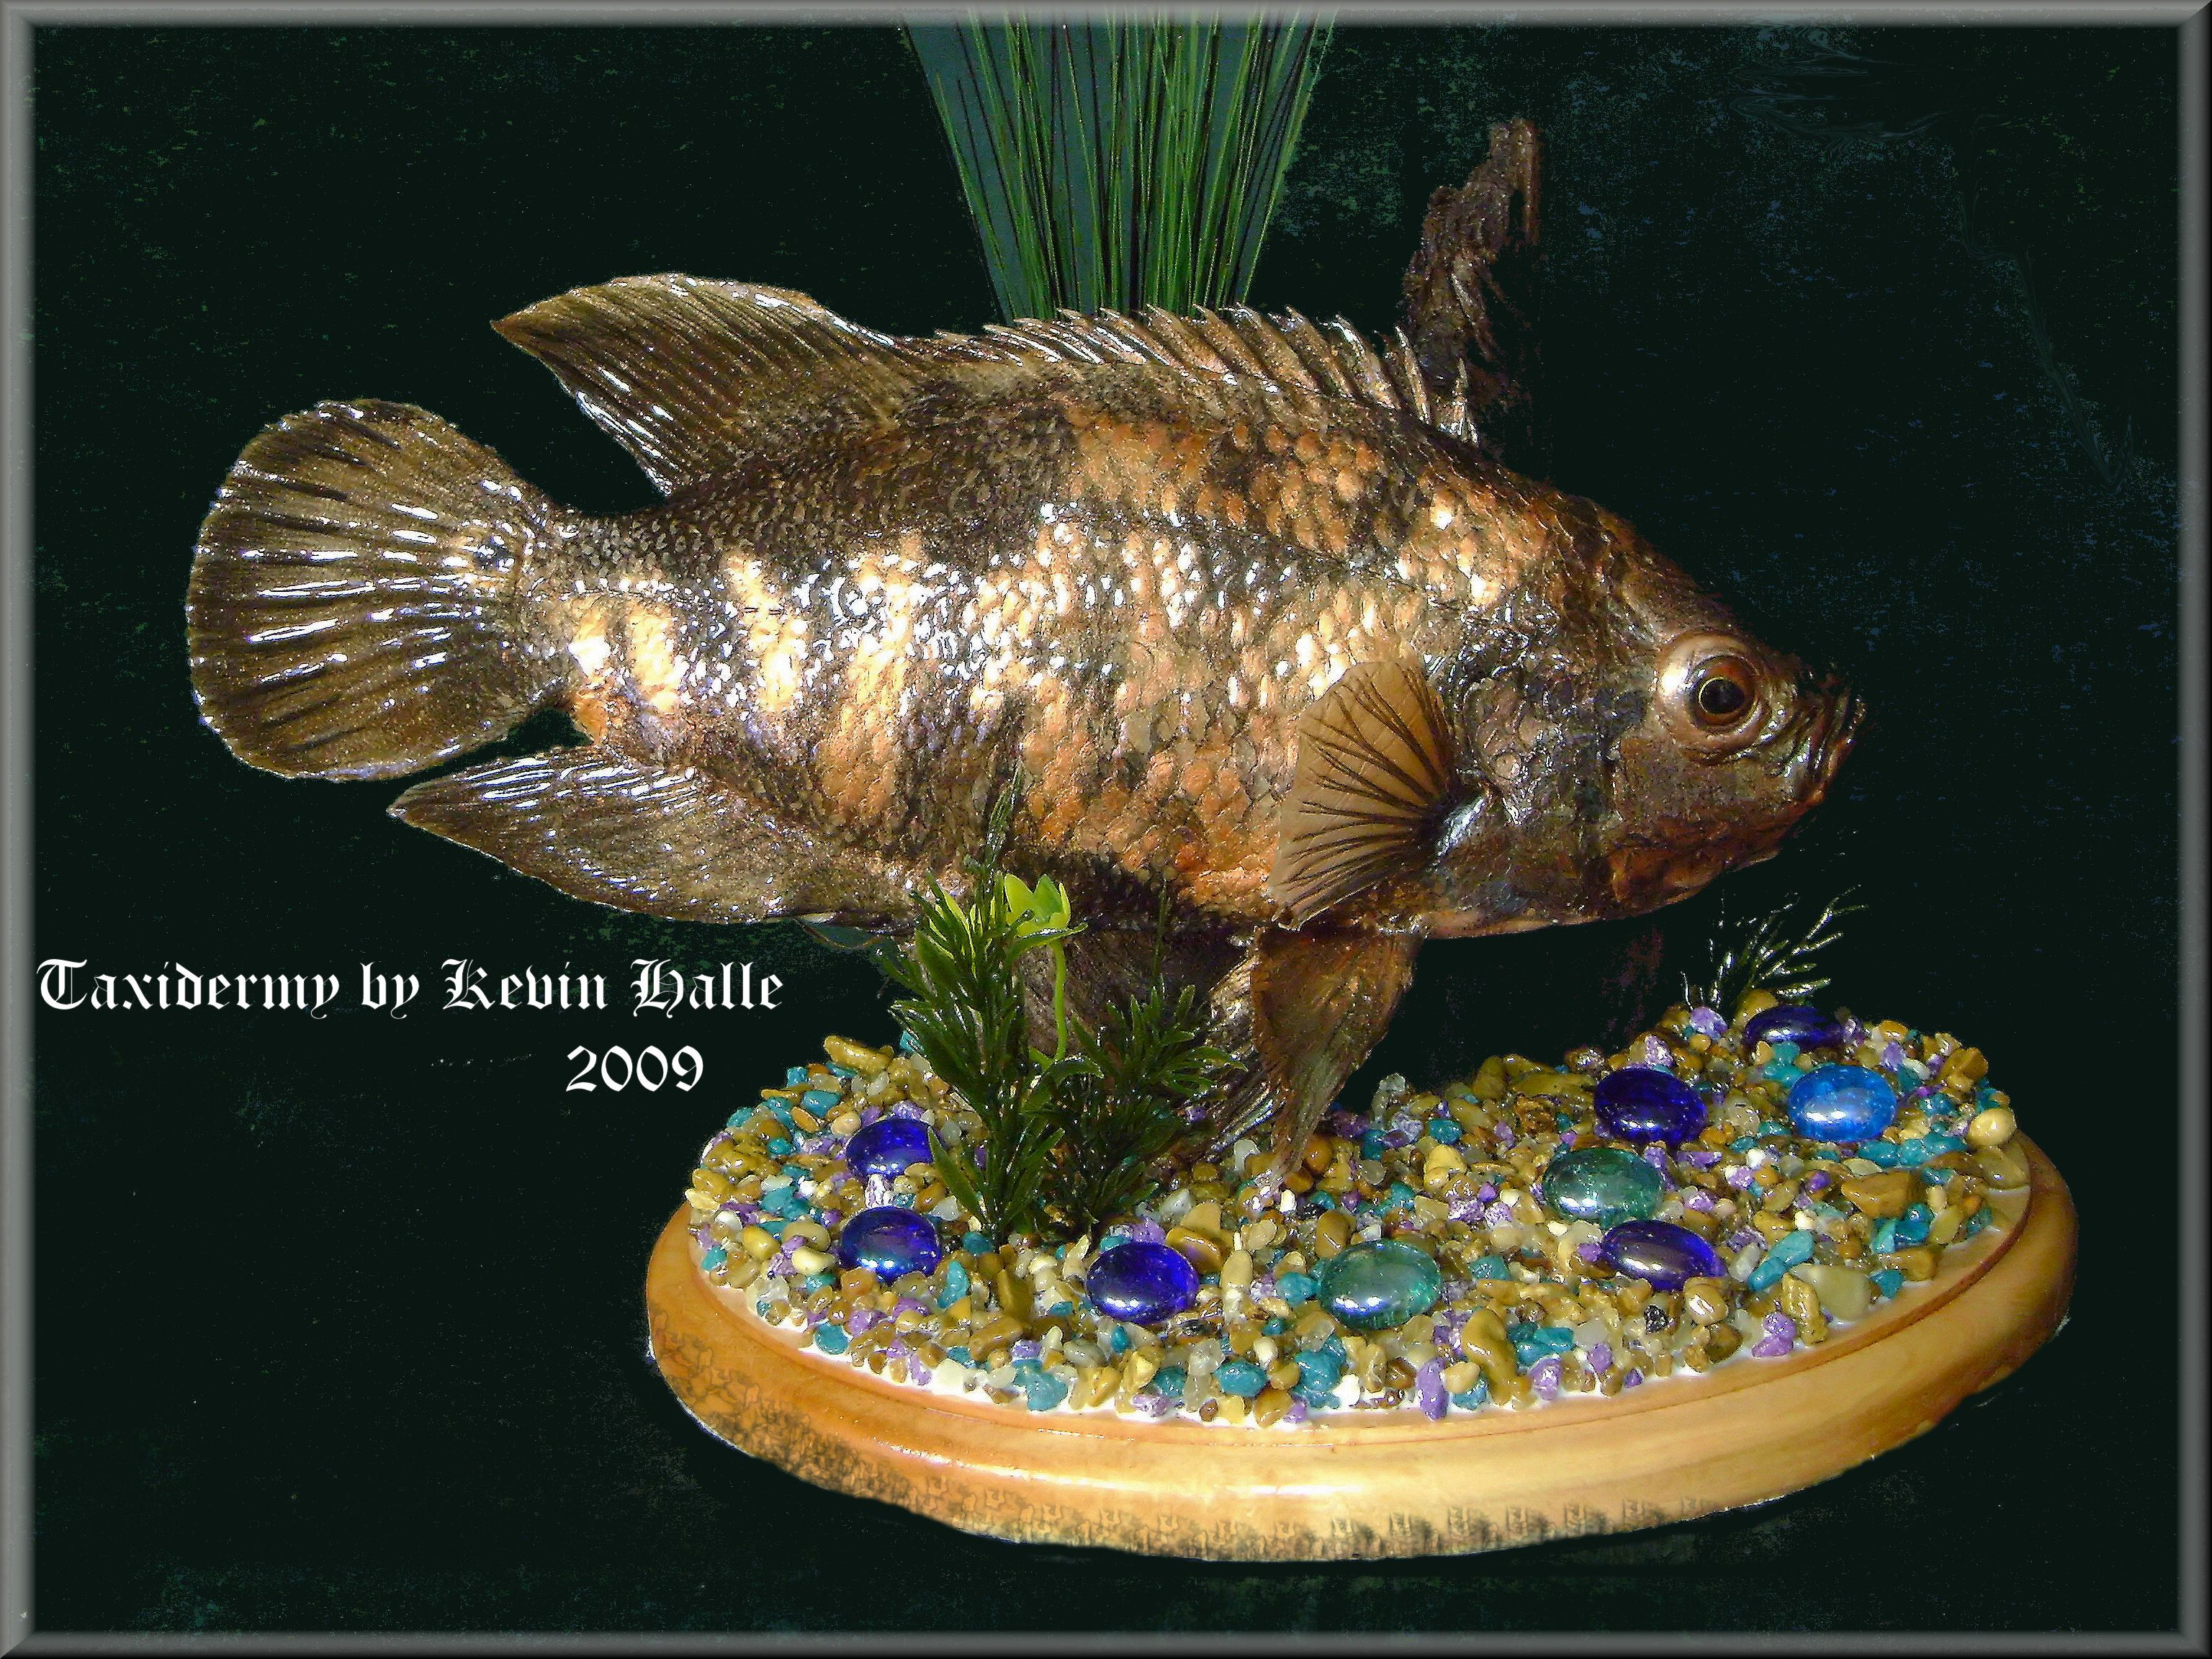 Freshwater fish of florida - Thumbnail Image Of A Freshwater Fish Taxidermy By Kevin Halle St Mary S